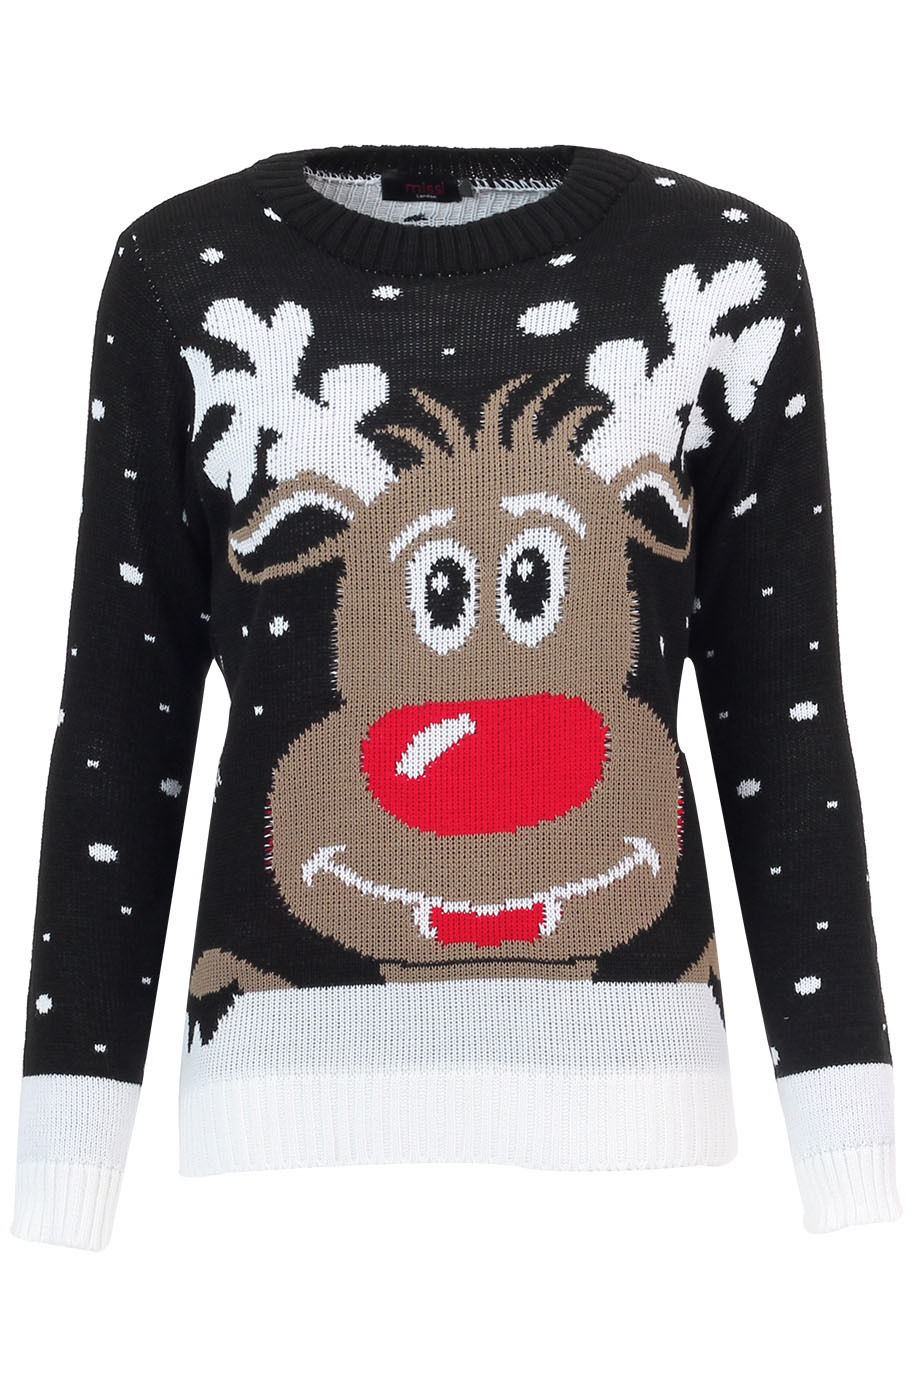 Ladies-Womens-Vintage-Retro-Sweater-Novelty-Knitted-Winter-Christmas-Jumper-Tops